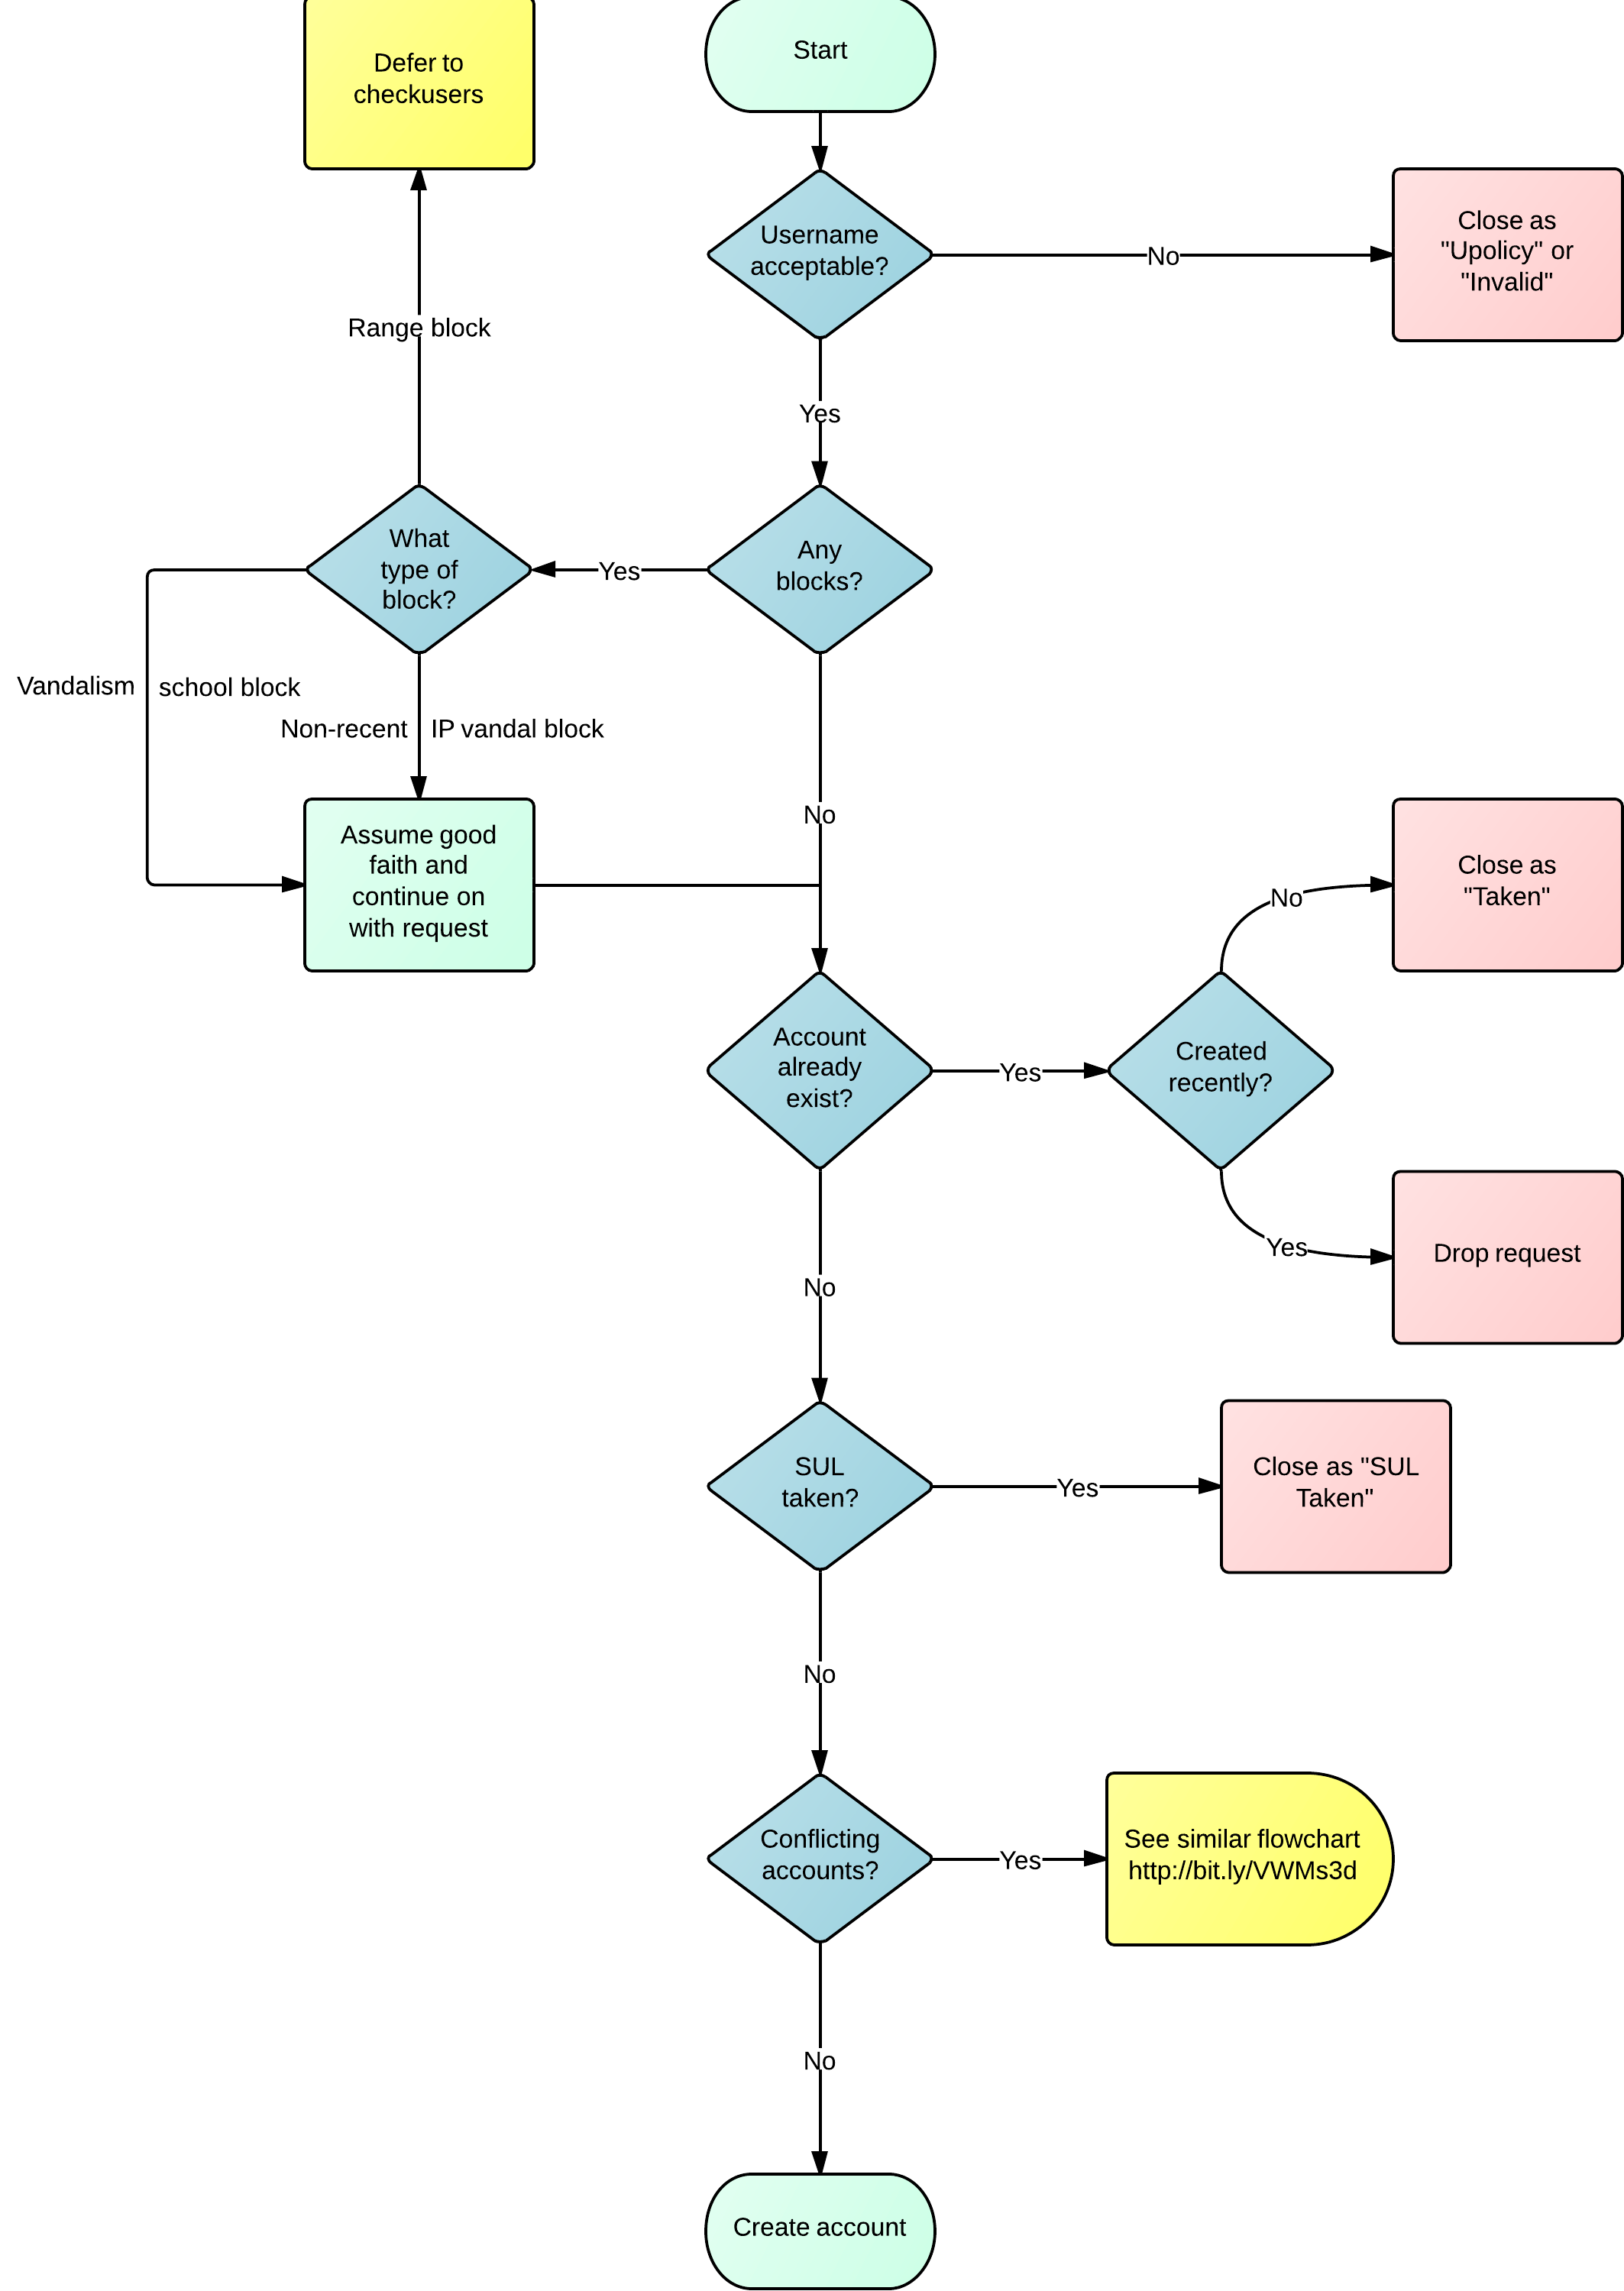 email flow diagram minn kota power drive v2 wiring file acc creation flowchart png wikimedia commons